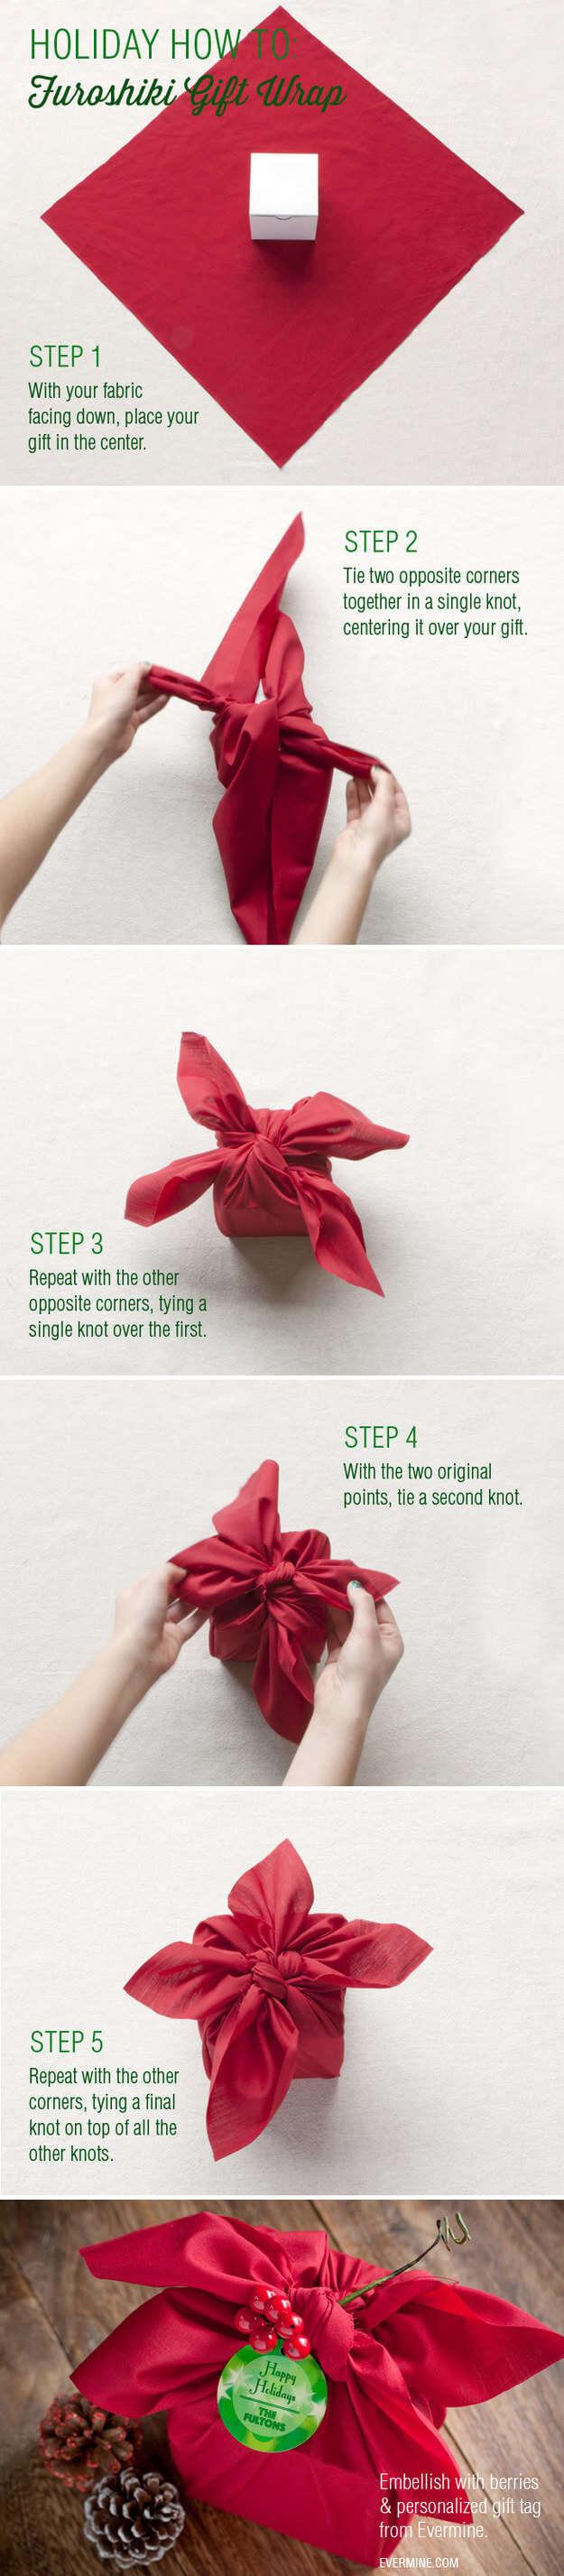 diy-creative-gift-wrapping-ideas Unique & Adorable Gift Wrapping Ideas